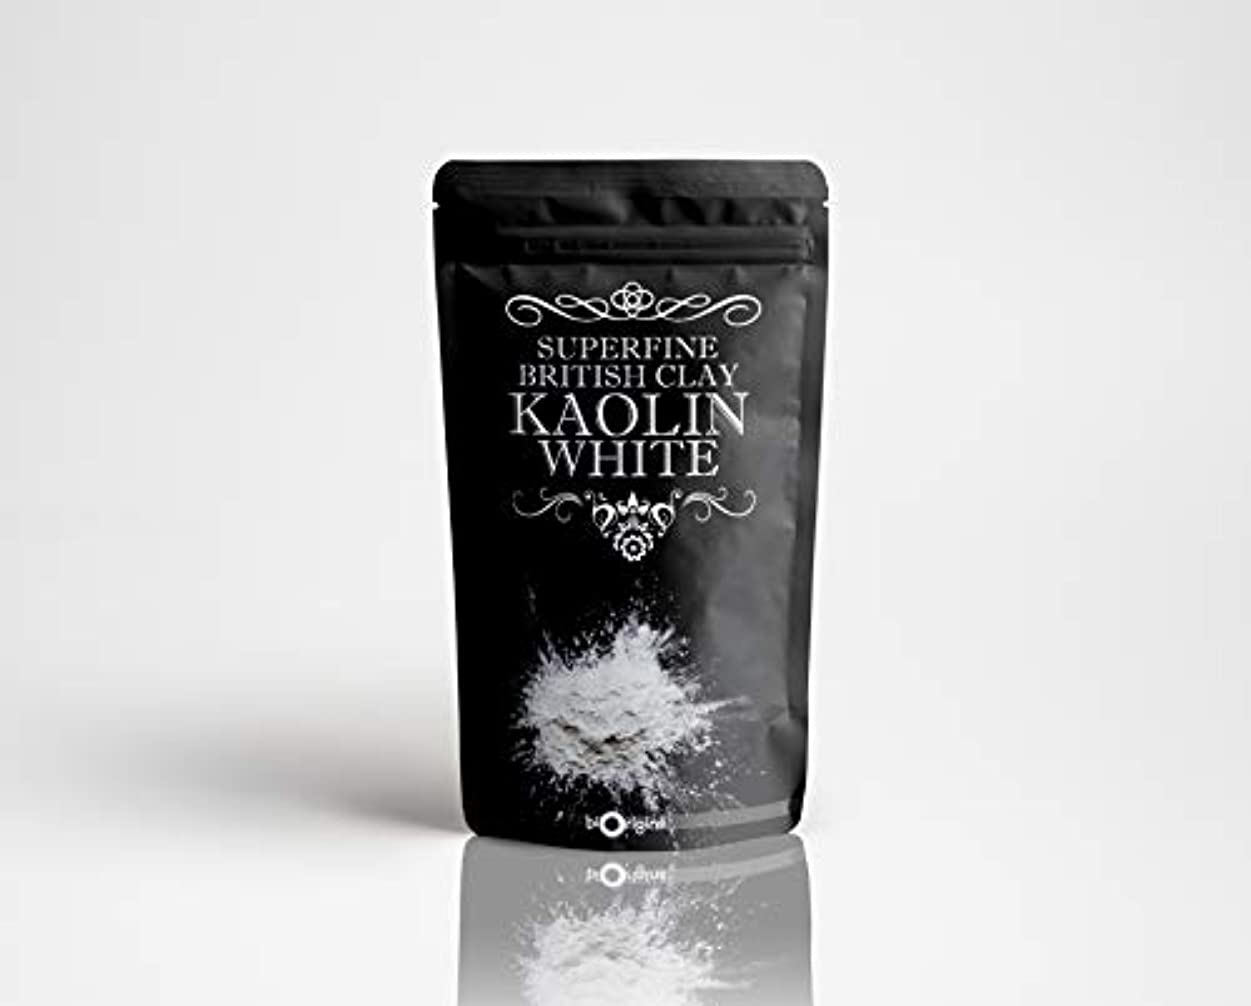 省一般的な委任するKaolin White Superfine British Clay - 100g